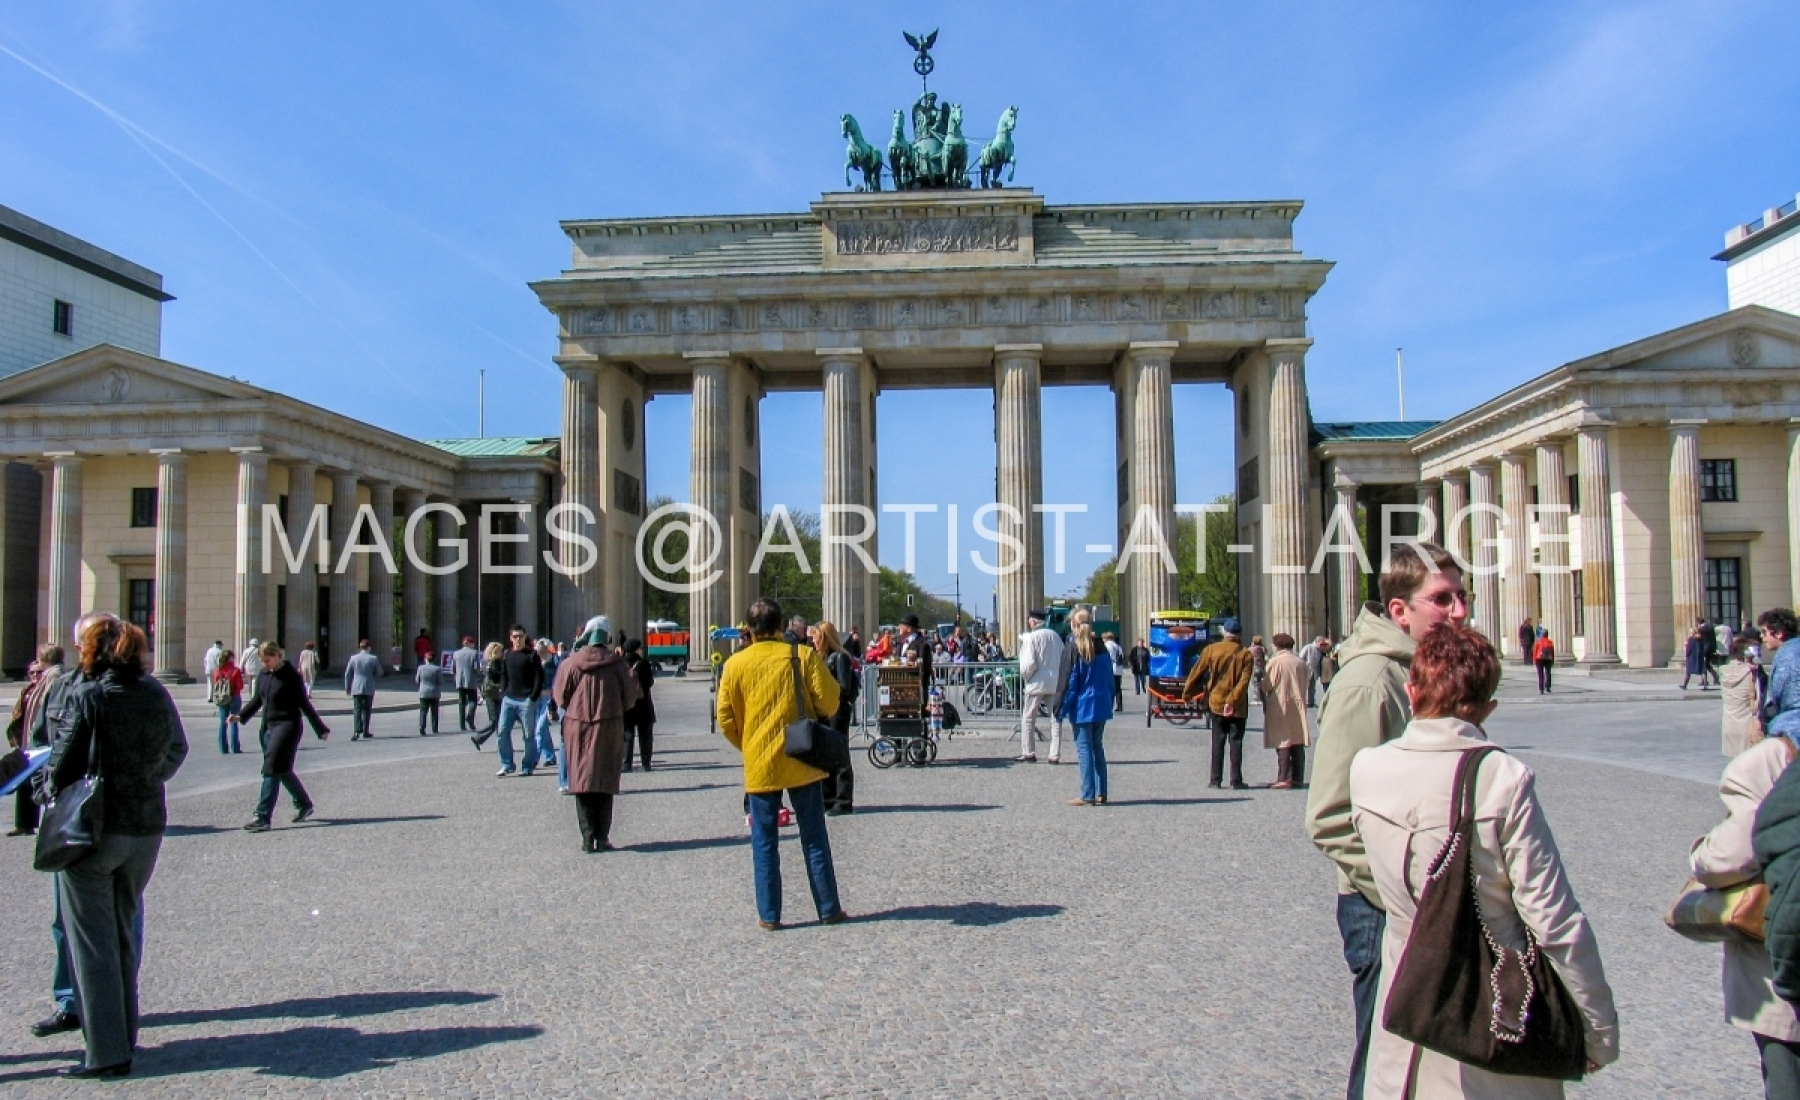 New Images Edited: Germany Mostly Berlin For Now